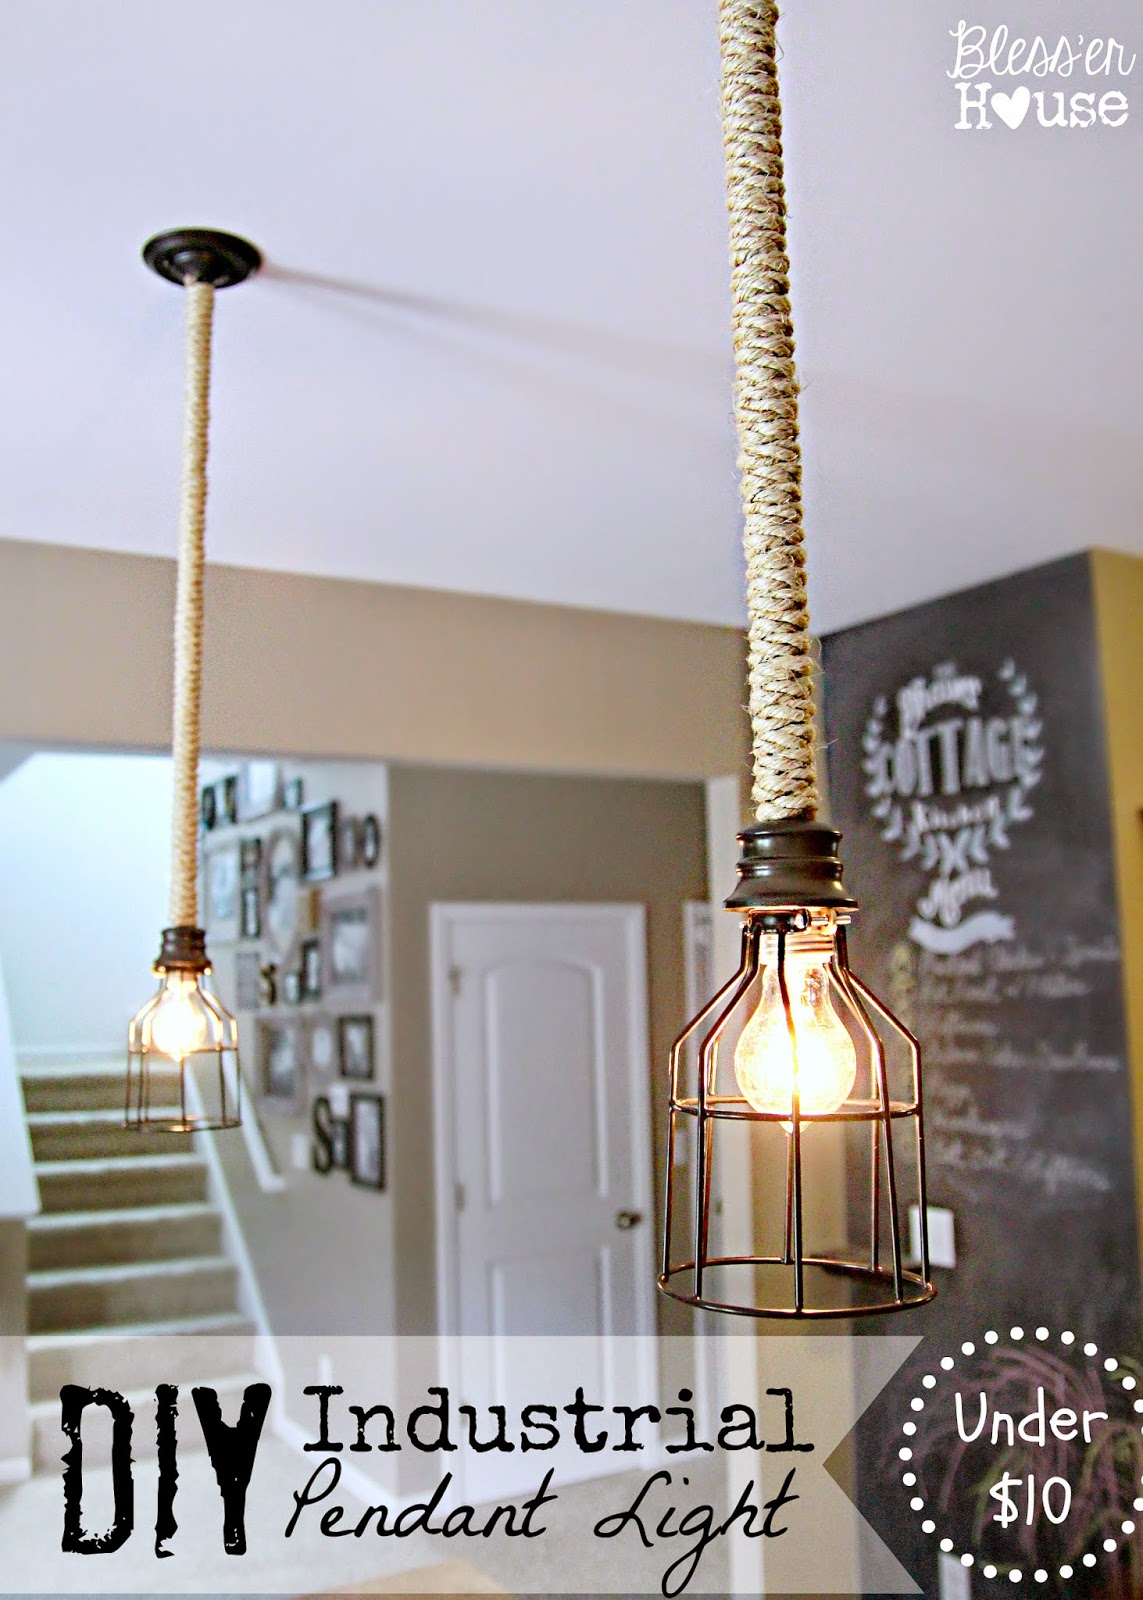 Diy industrial pendant light for under 10 blesser house diy industrial pendant light blesser house aloadofball Images